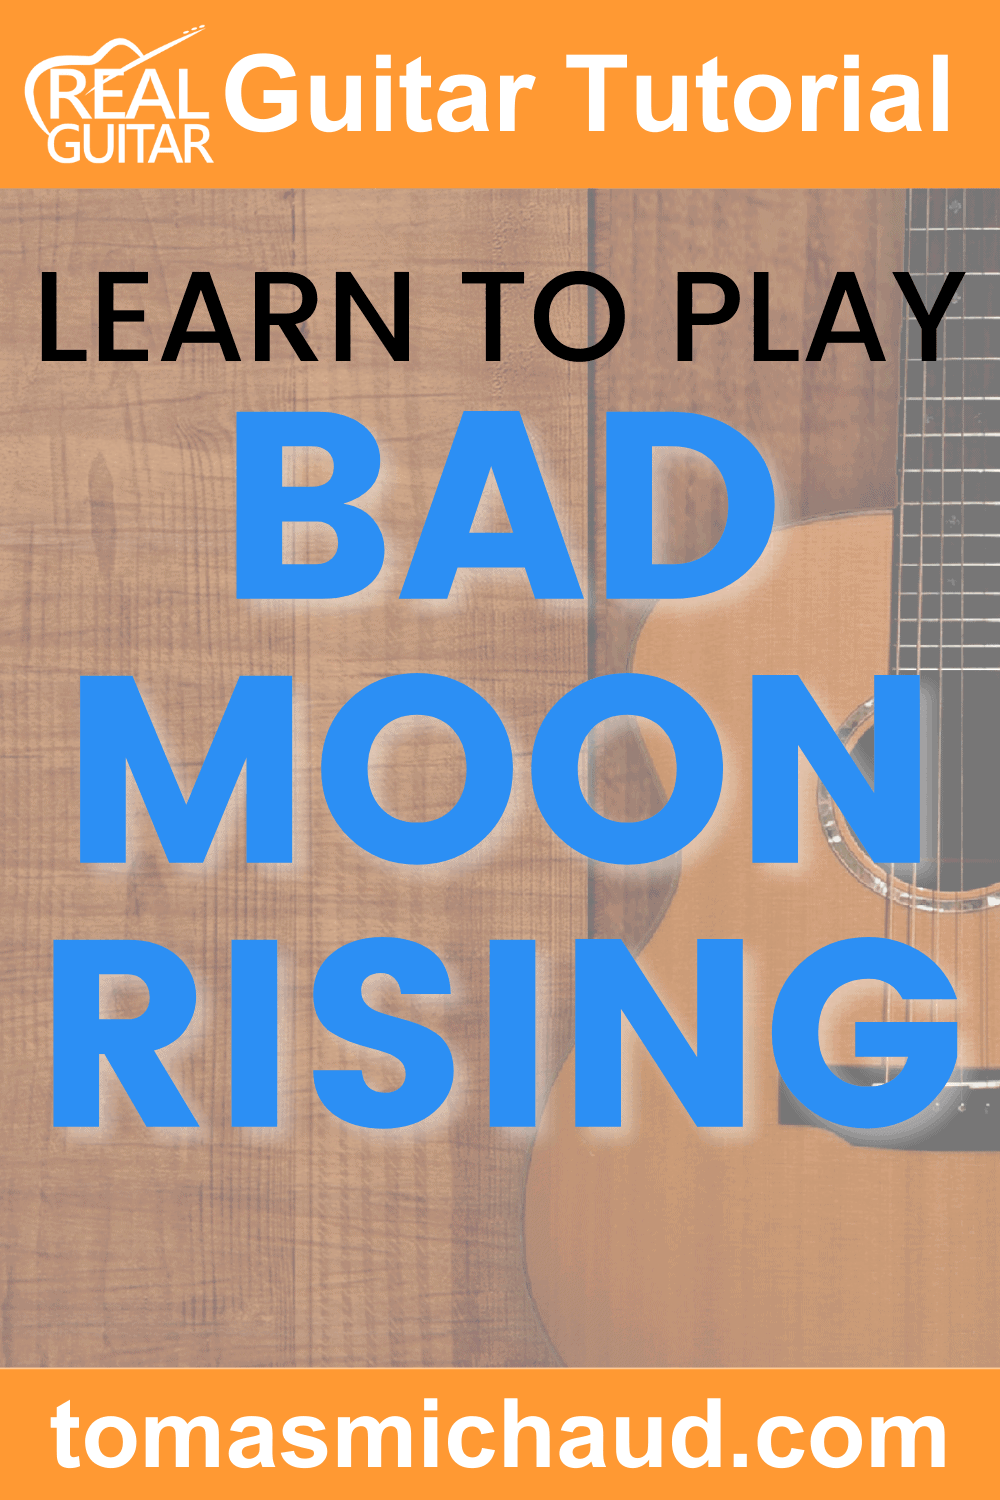 Learn to Play Bad Moon Rising